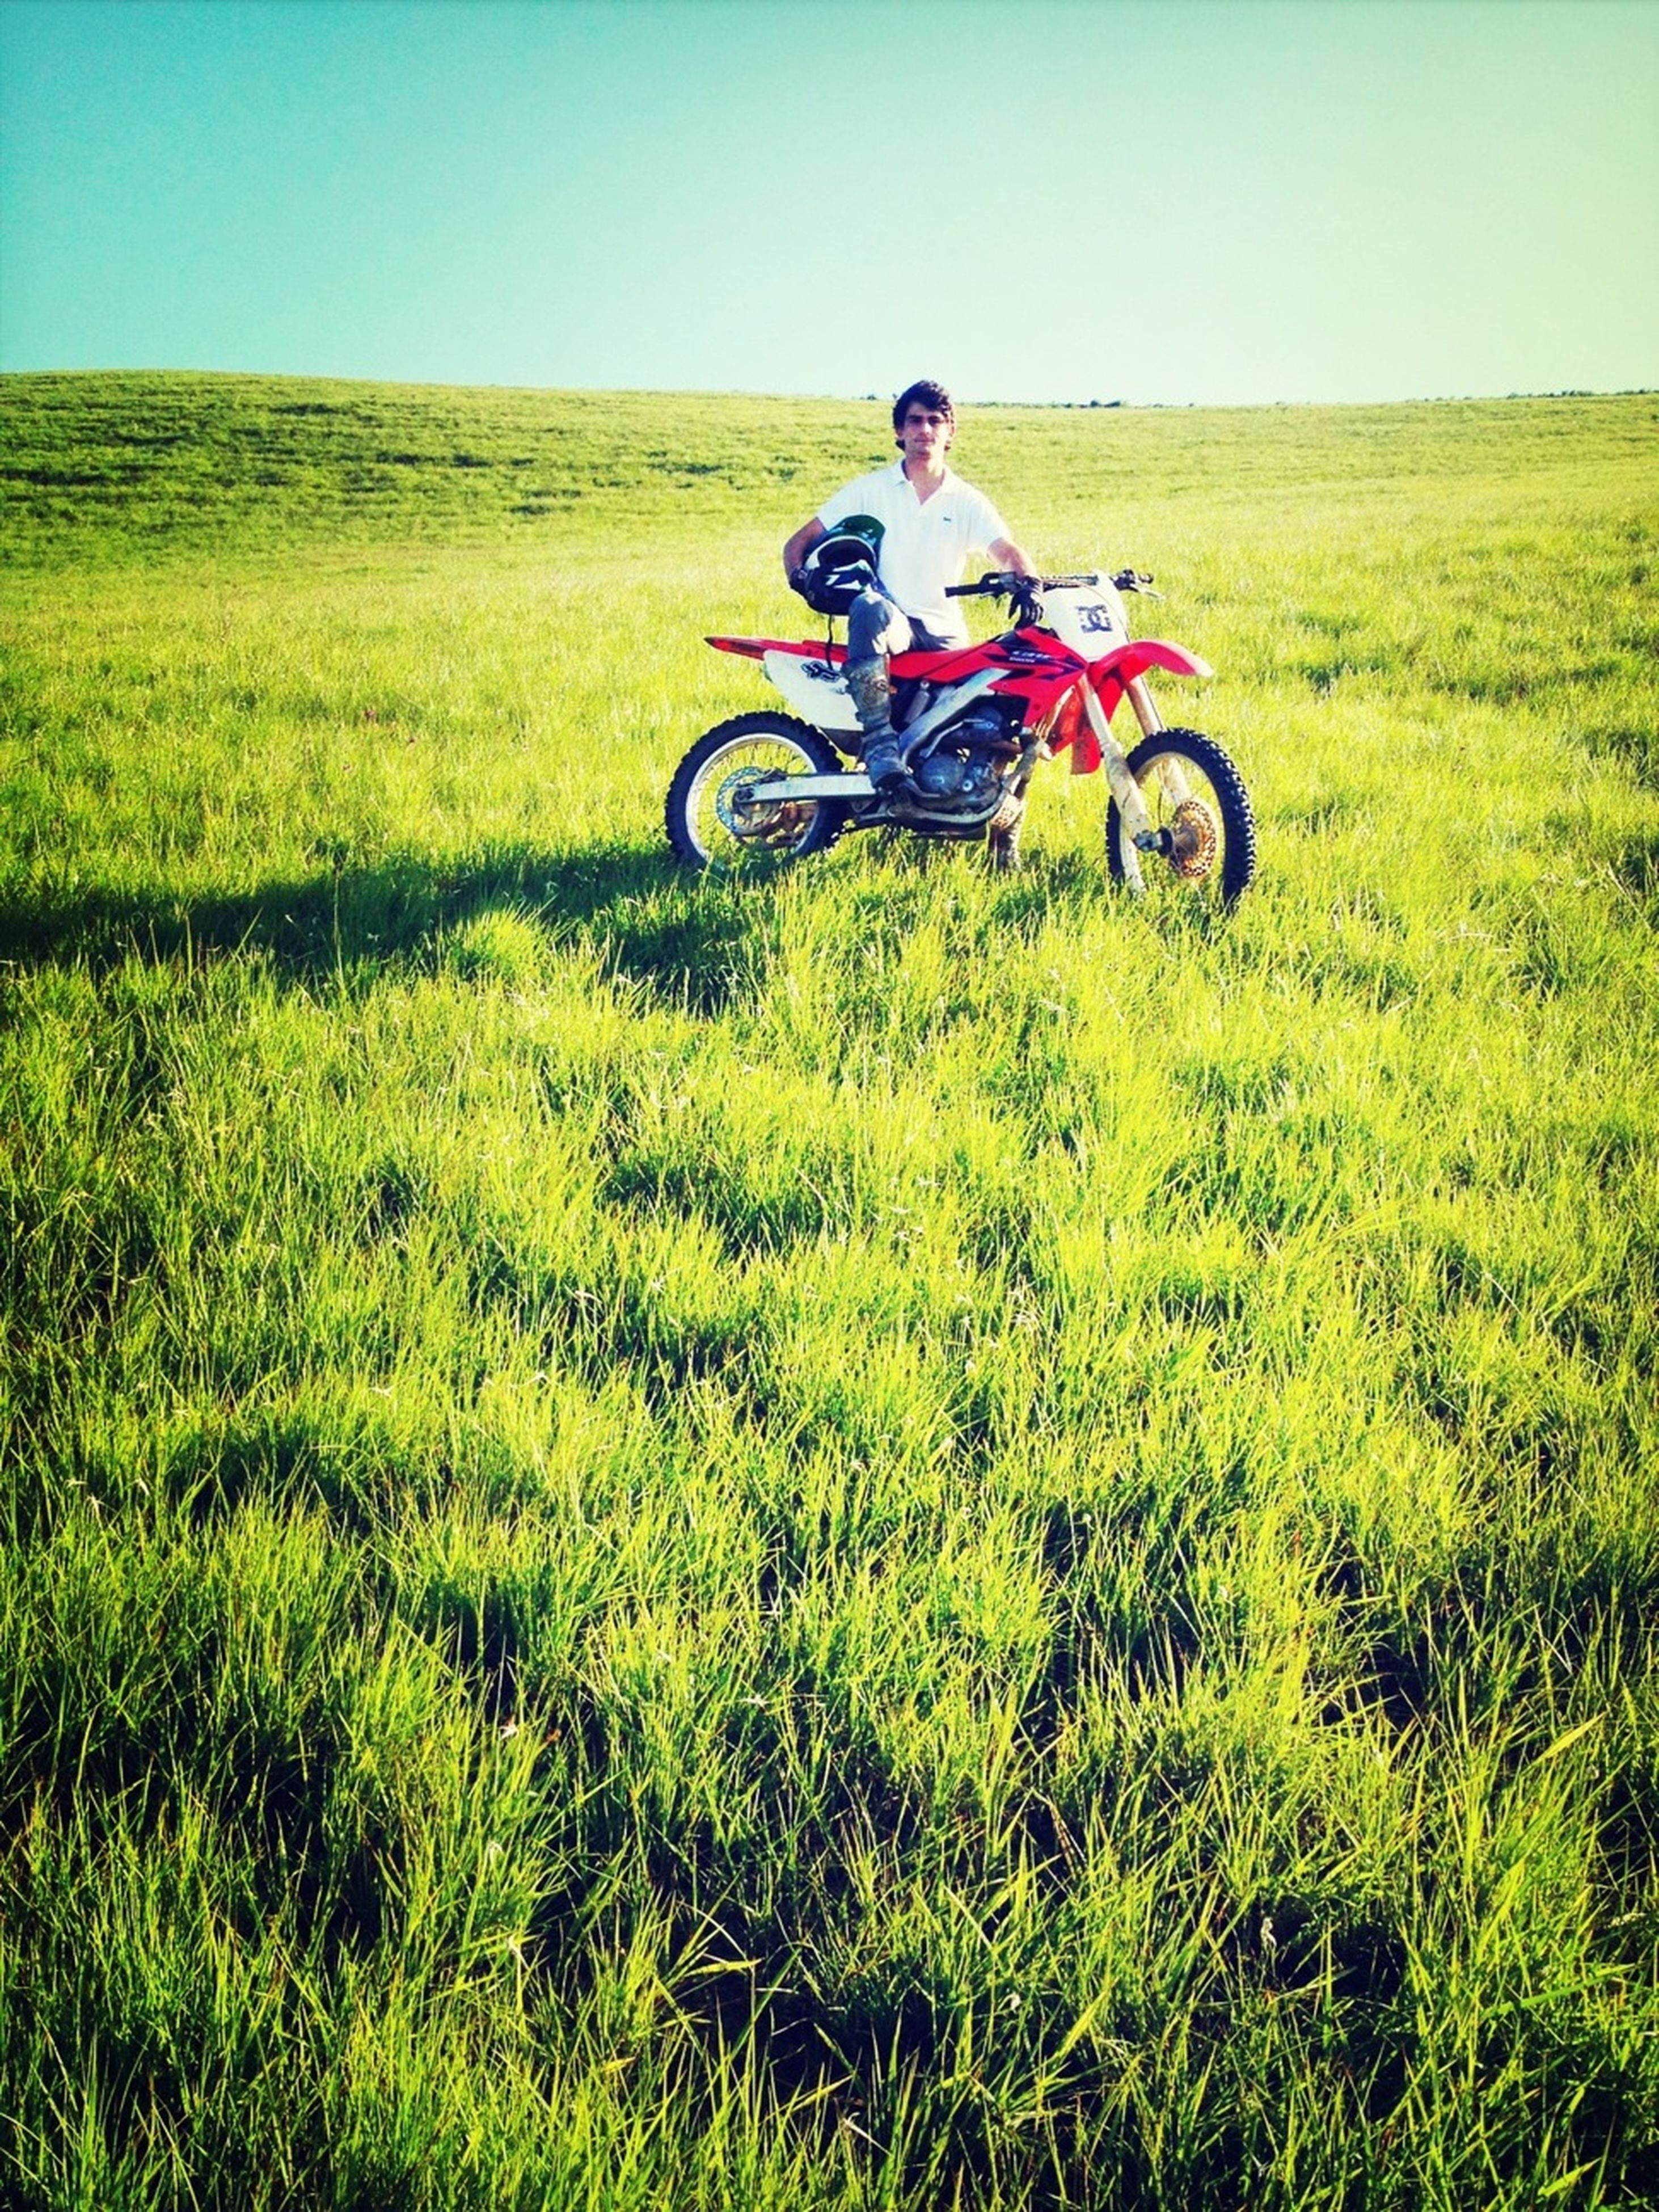 transportation, land vehicle, mode of transport, bicycle, grass, field, riding, leisure activity, lifestyles, grassy, landscape, clear sky, men, green color, sunlight, cycling, growth, full length